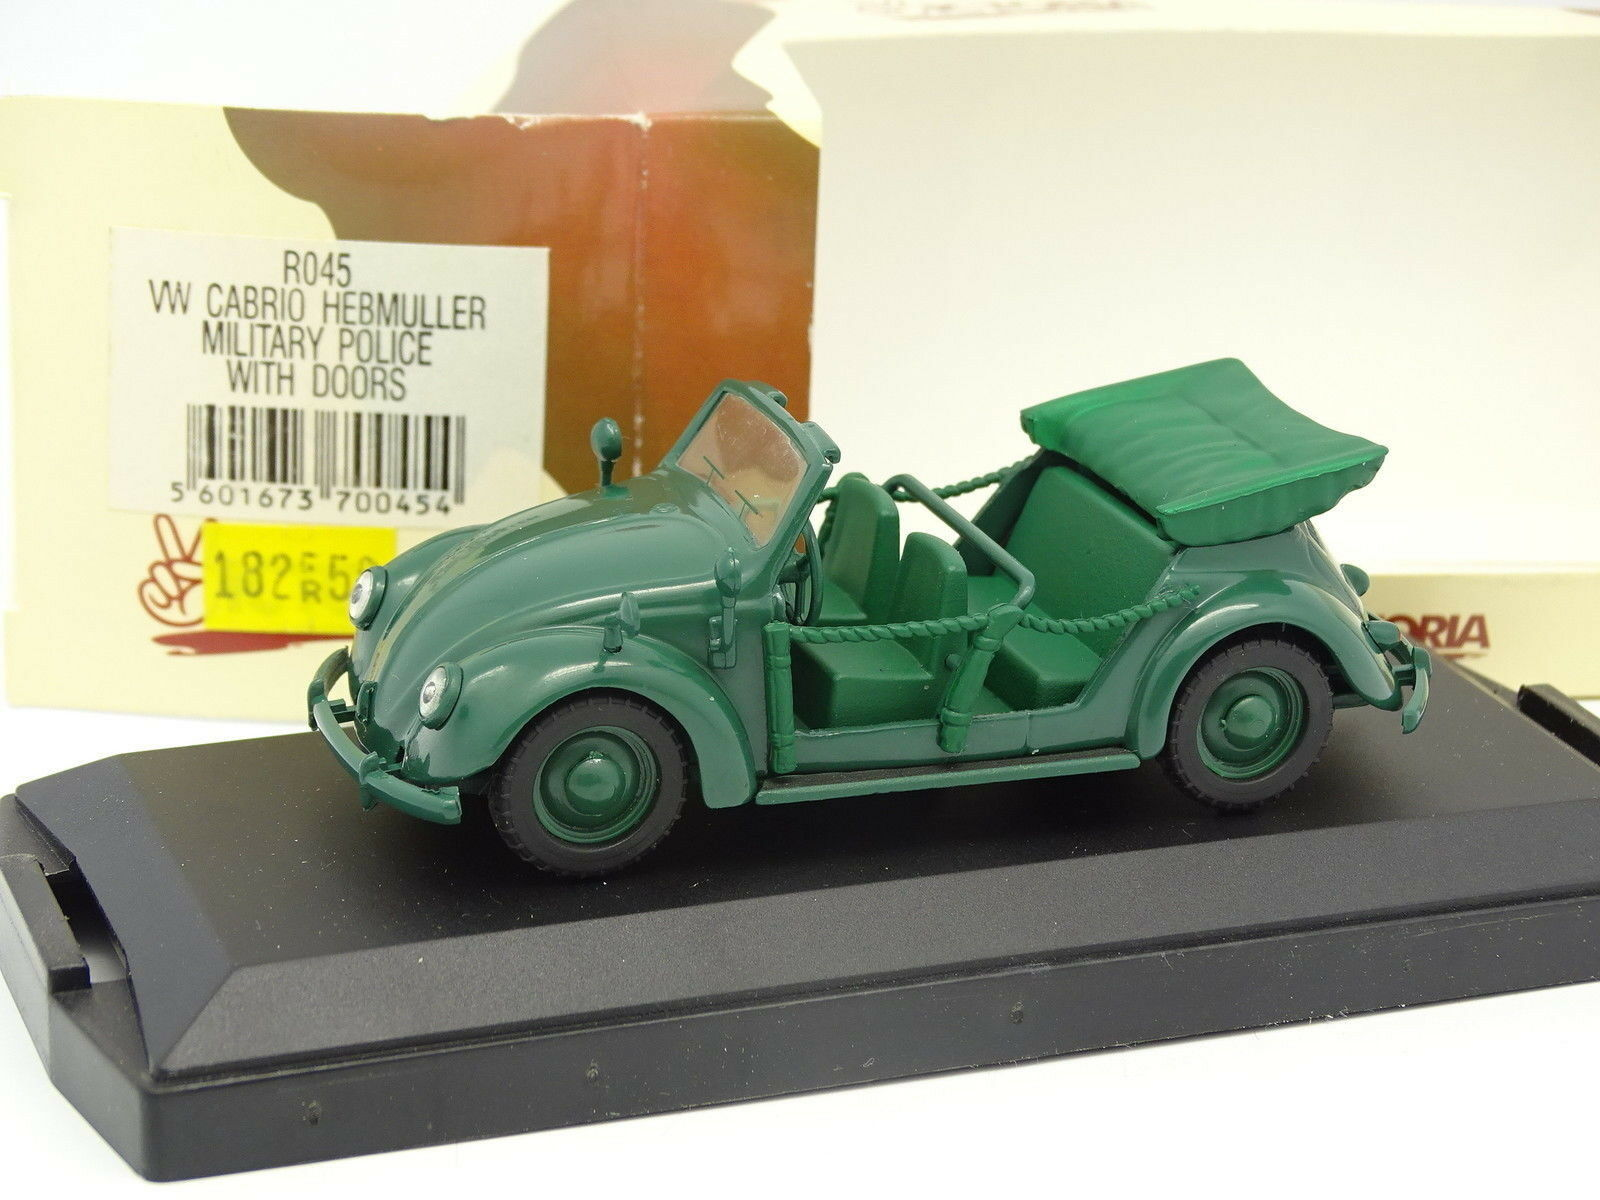 Victoria Militaire Army 1 43 - VW Cabrio Hebmuller Military Police ss Portes